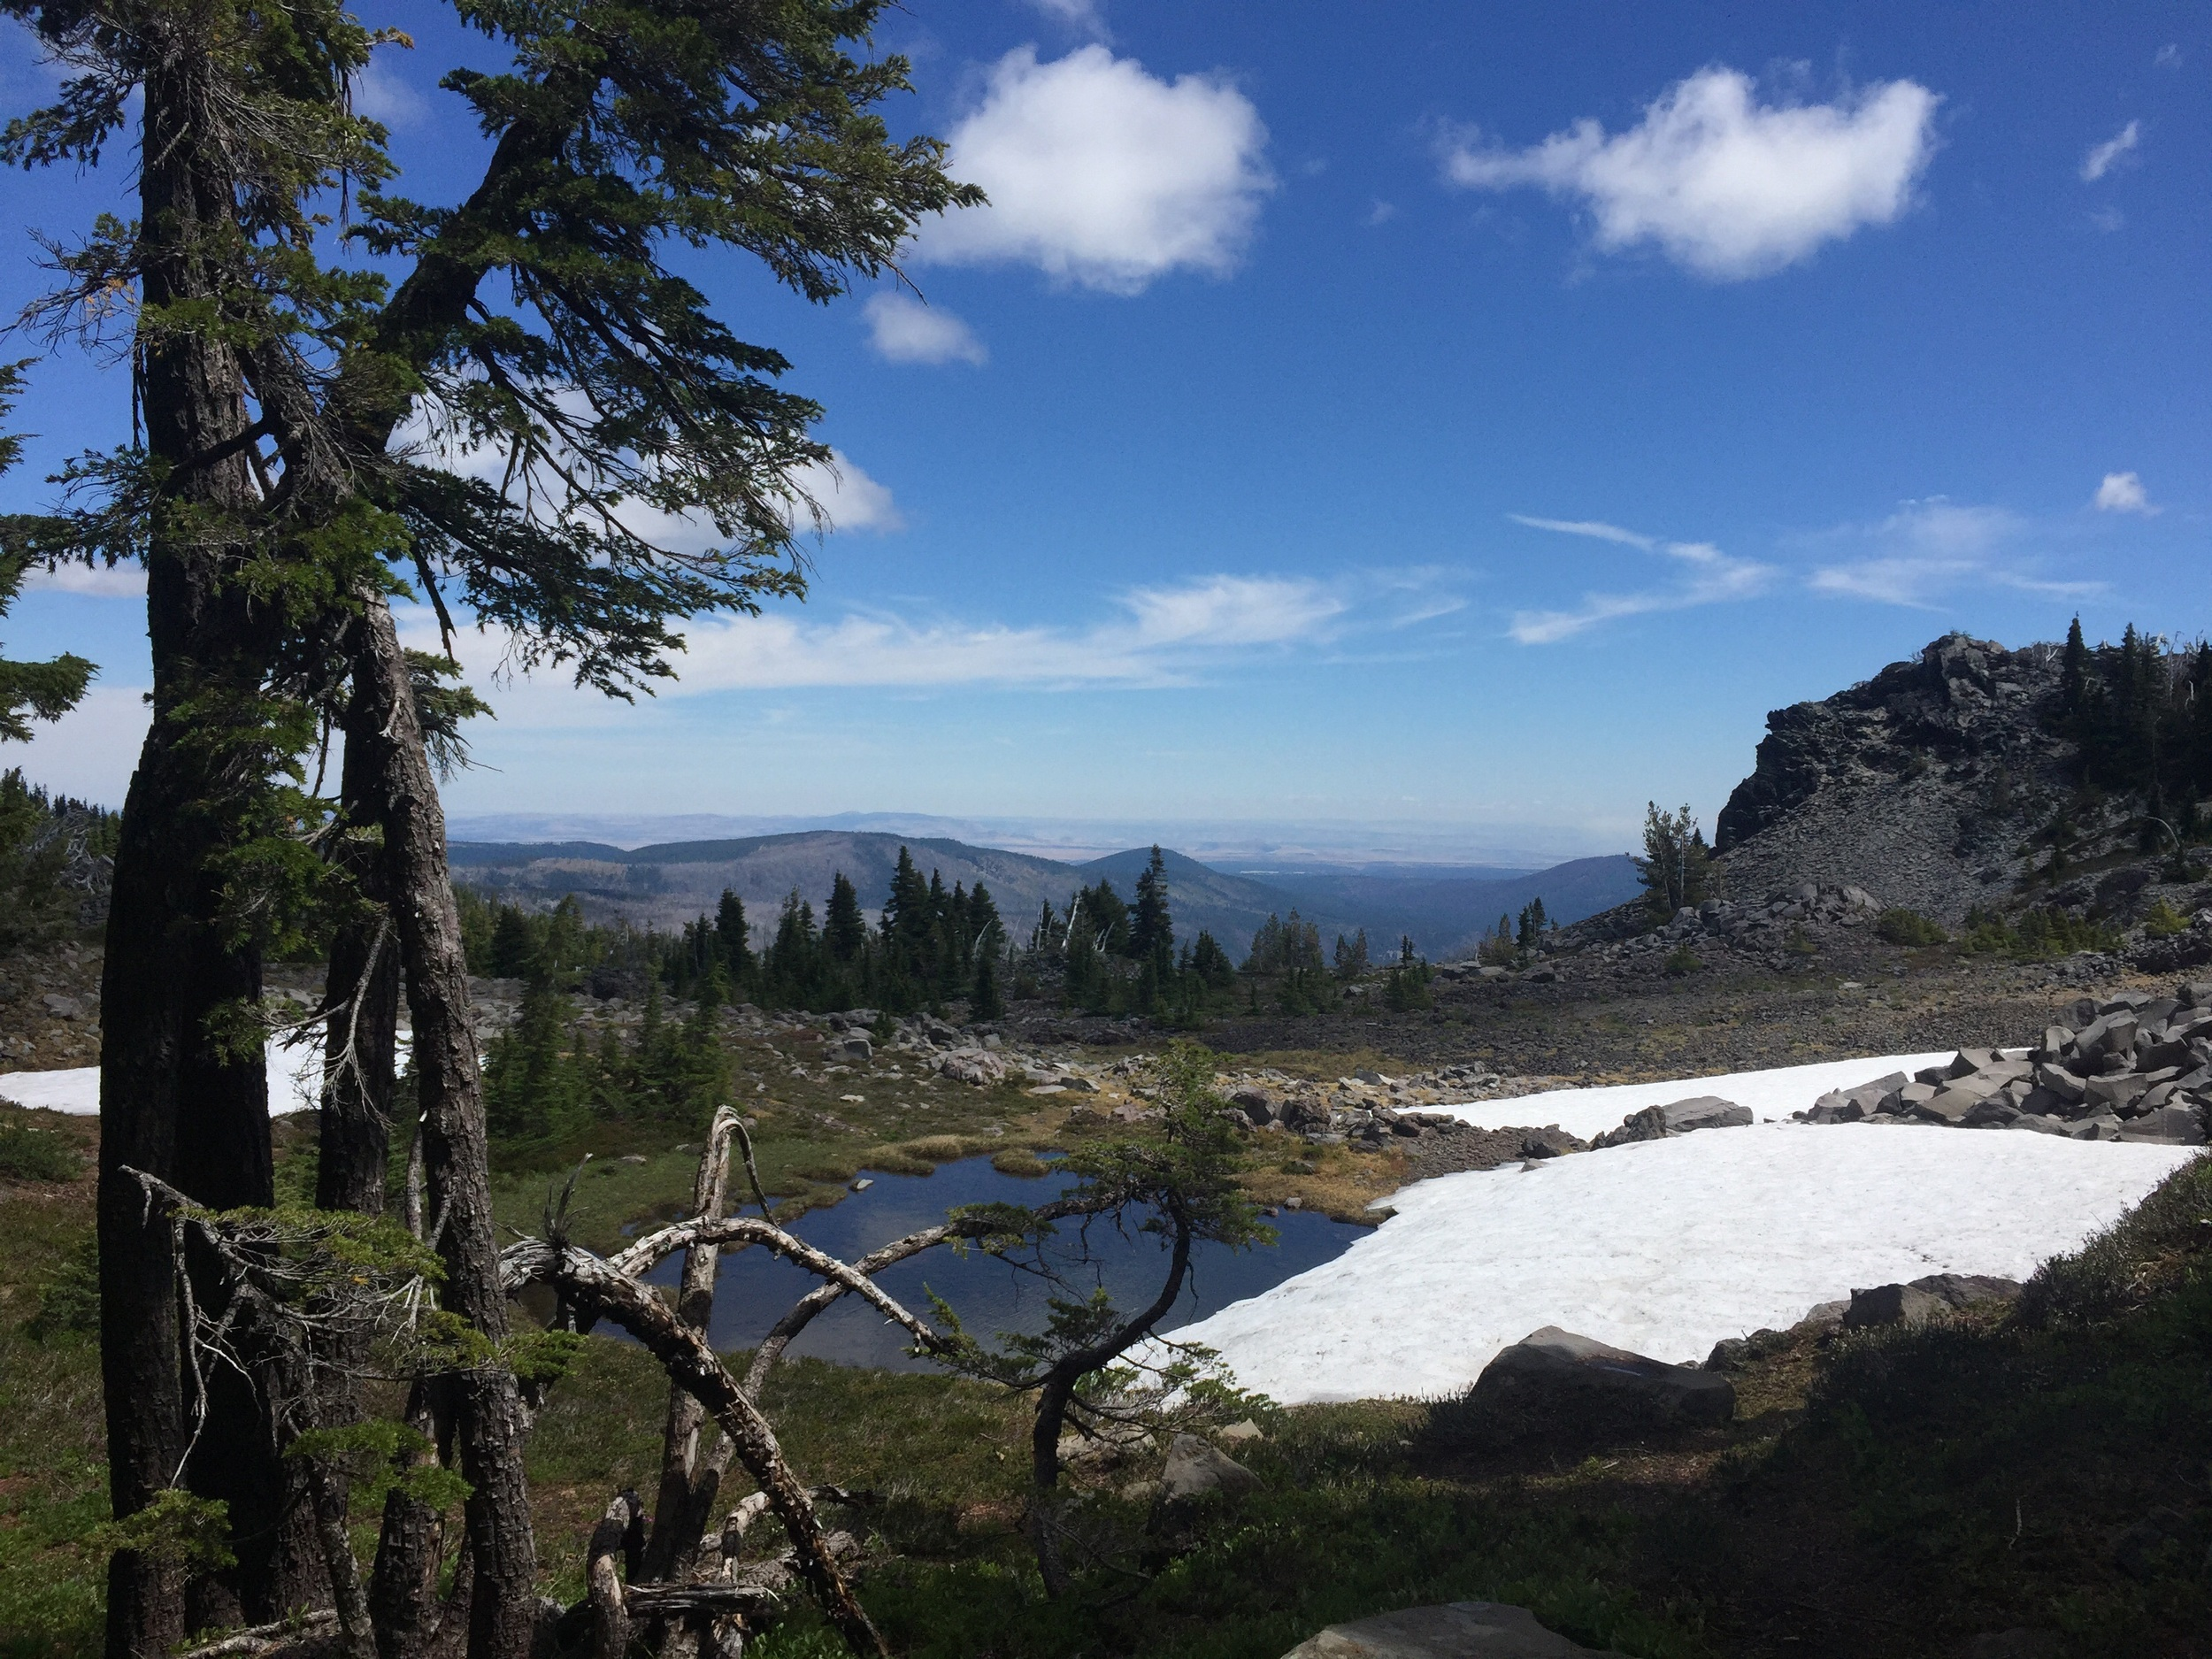 An oasis of snowmelt pools as we climb higher, and a broad vista to the north